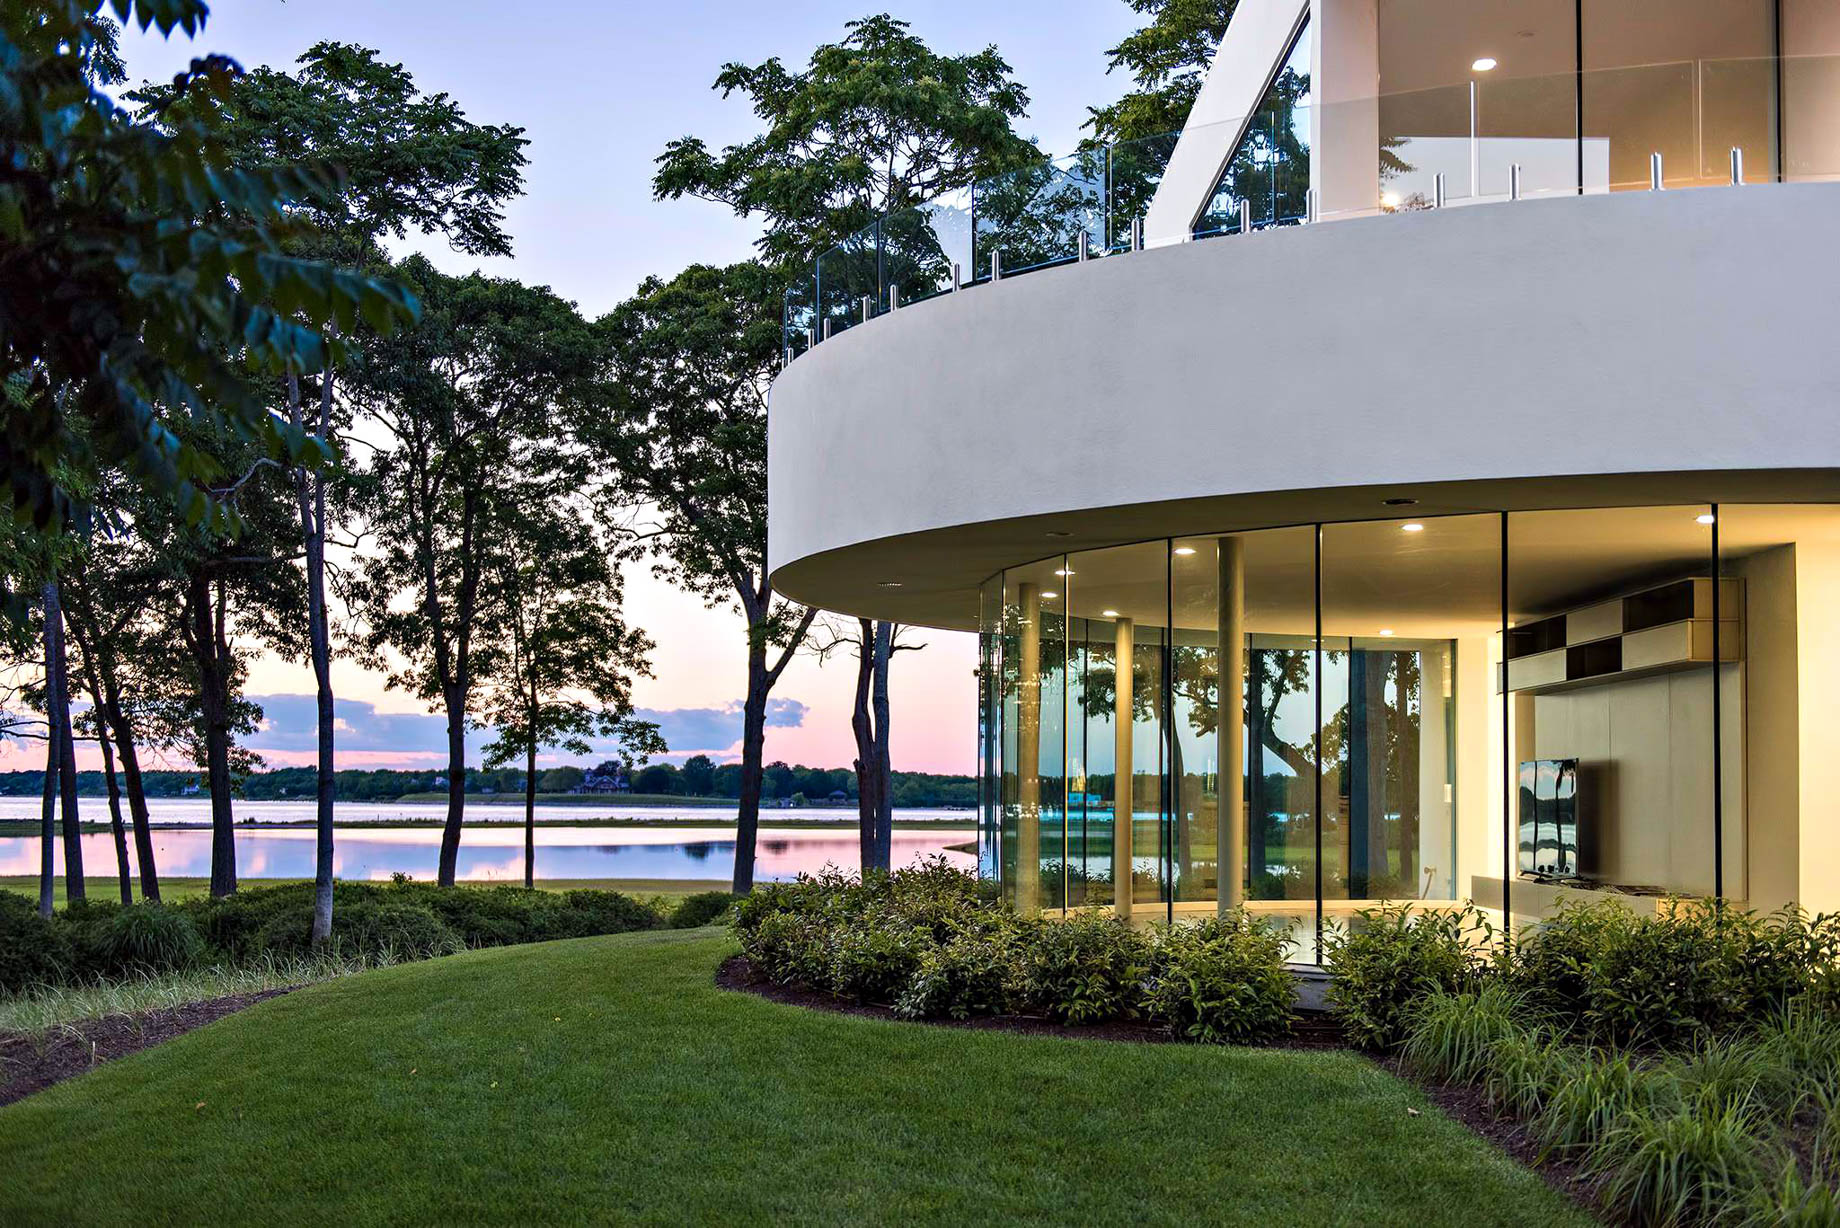 North Haven Modern – 6 Seaponack Dr, Sag Harbor, NY, USA